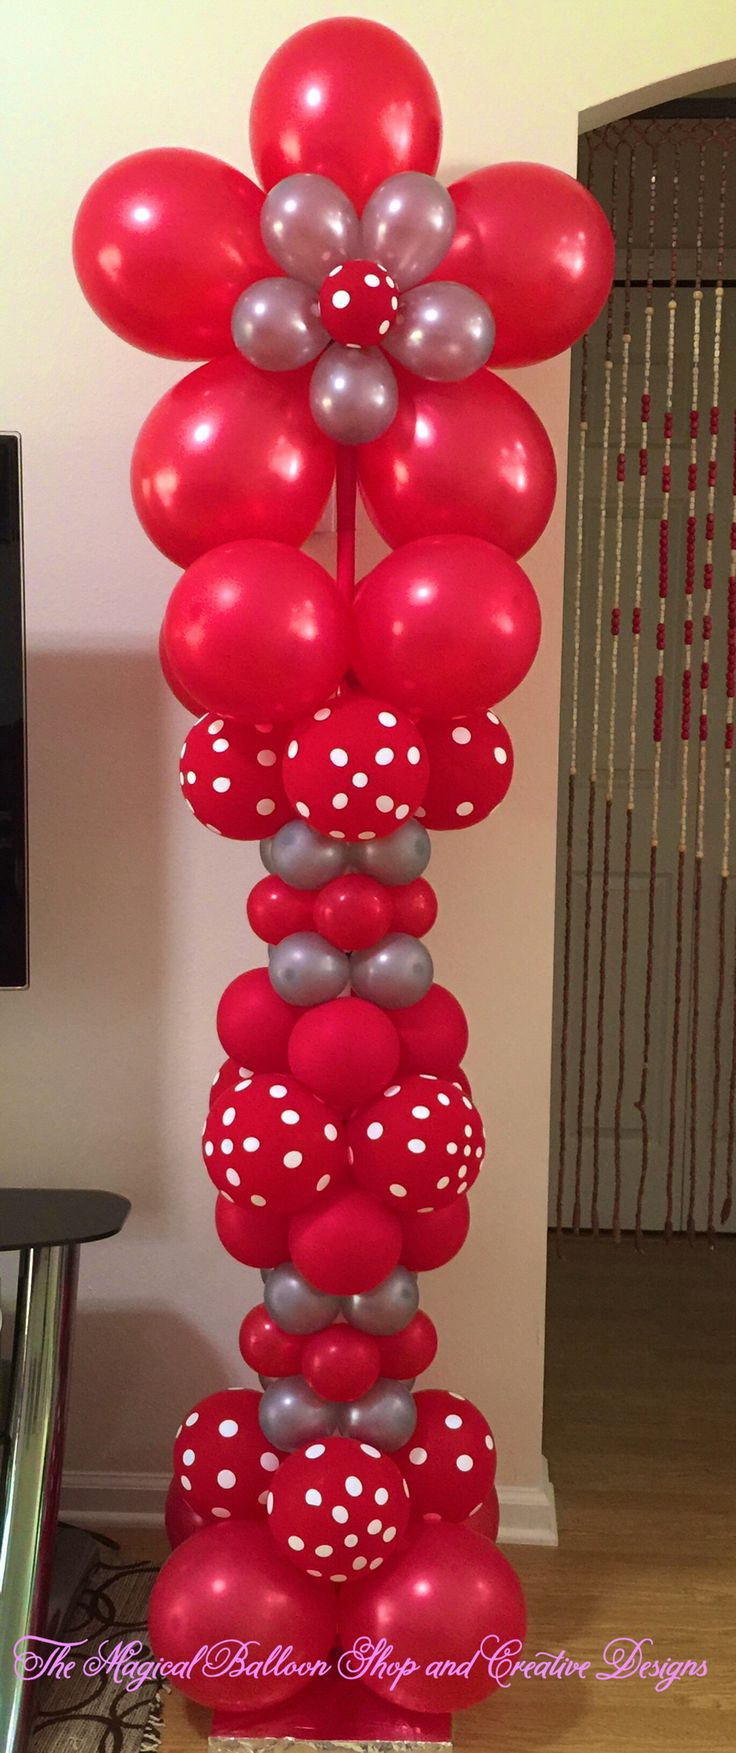 1186 best Balloons decorations images on Pinterest Balloon